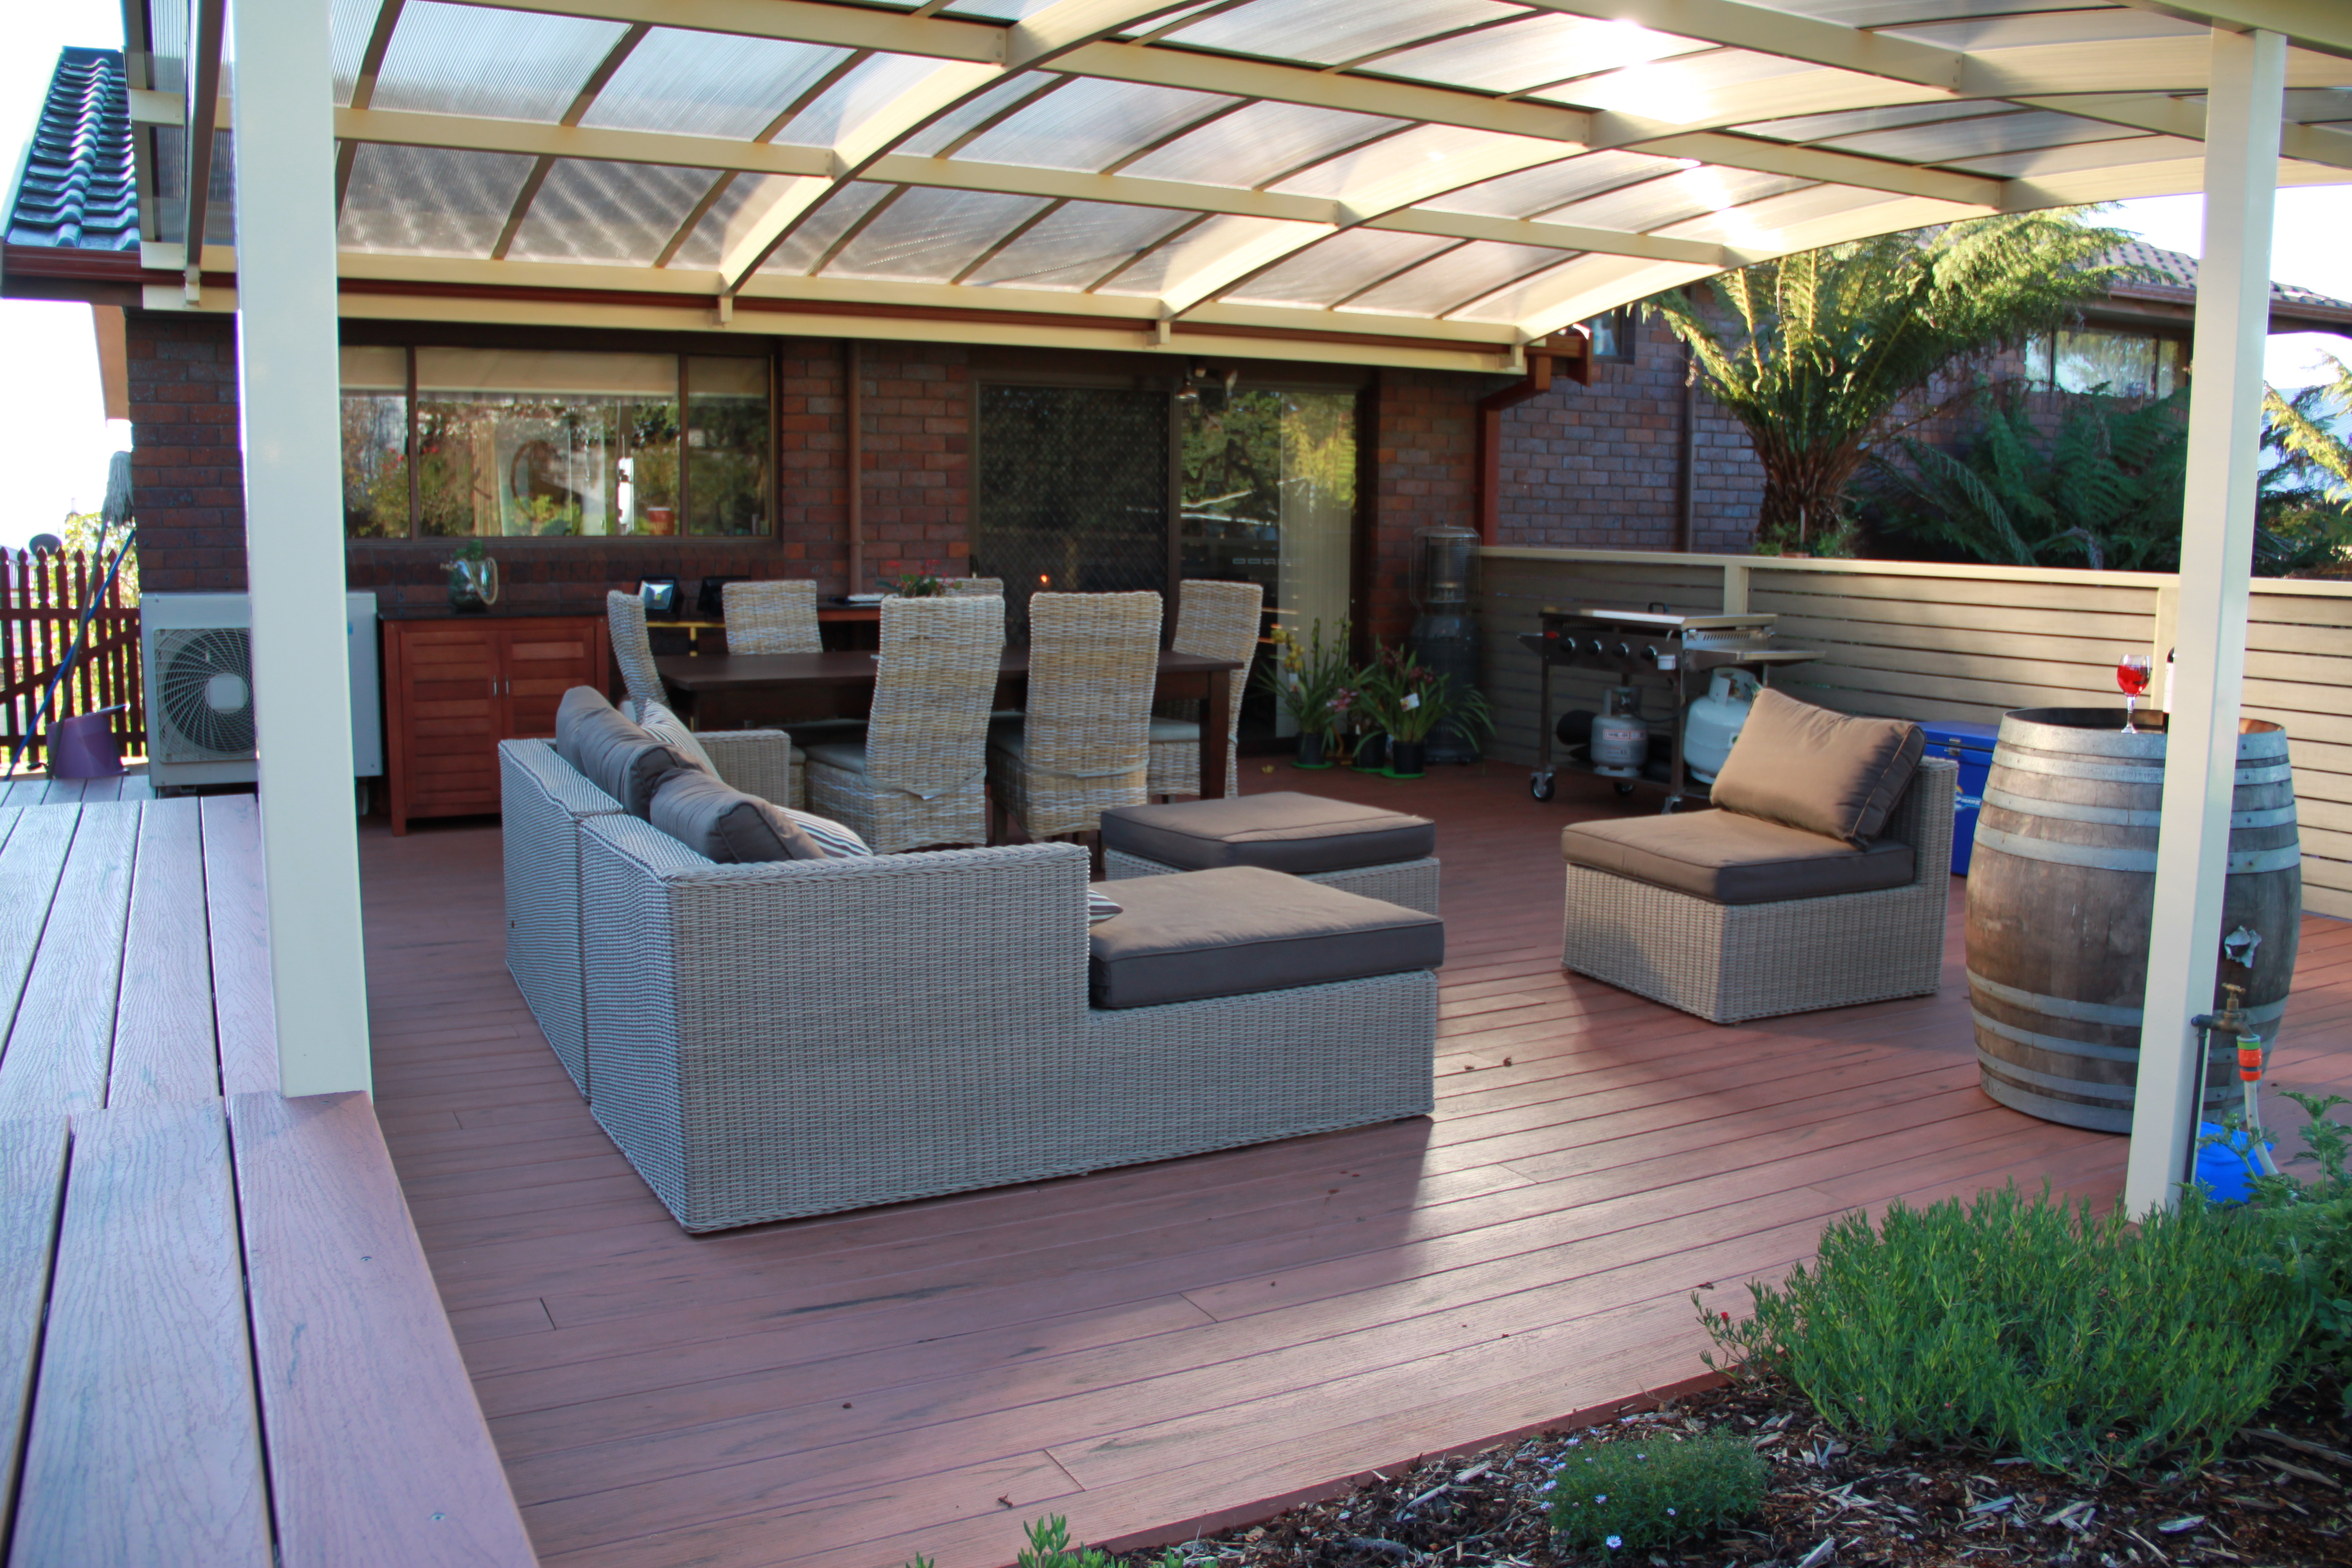 deck best solid kits of decor terrace roof the awnings covered a diy alumawood awning canopy impressive shade side ideas over design ouseva lightweight images patio building cedar